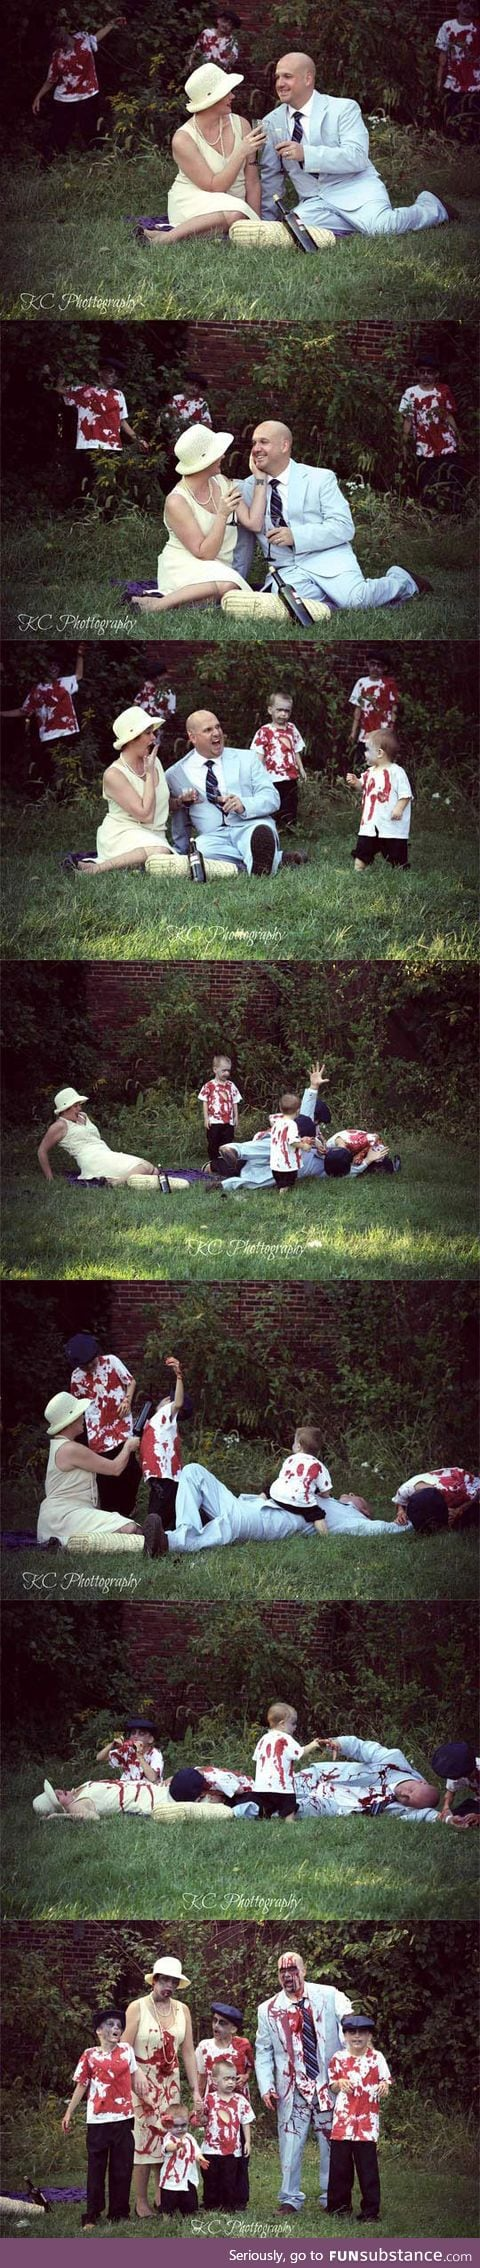 Family's Picnic Gets Interrupted